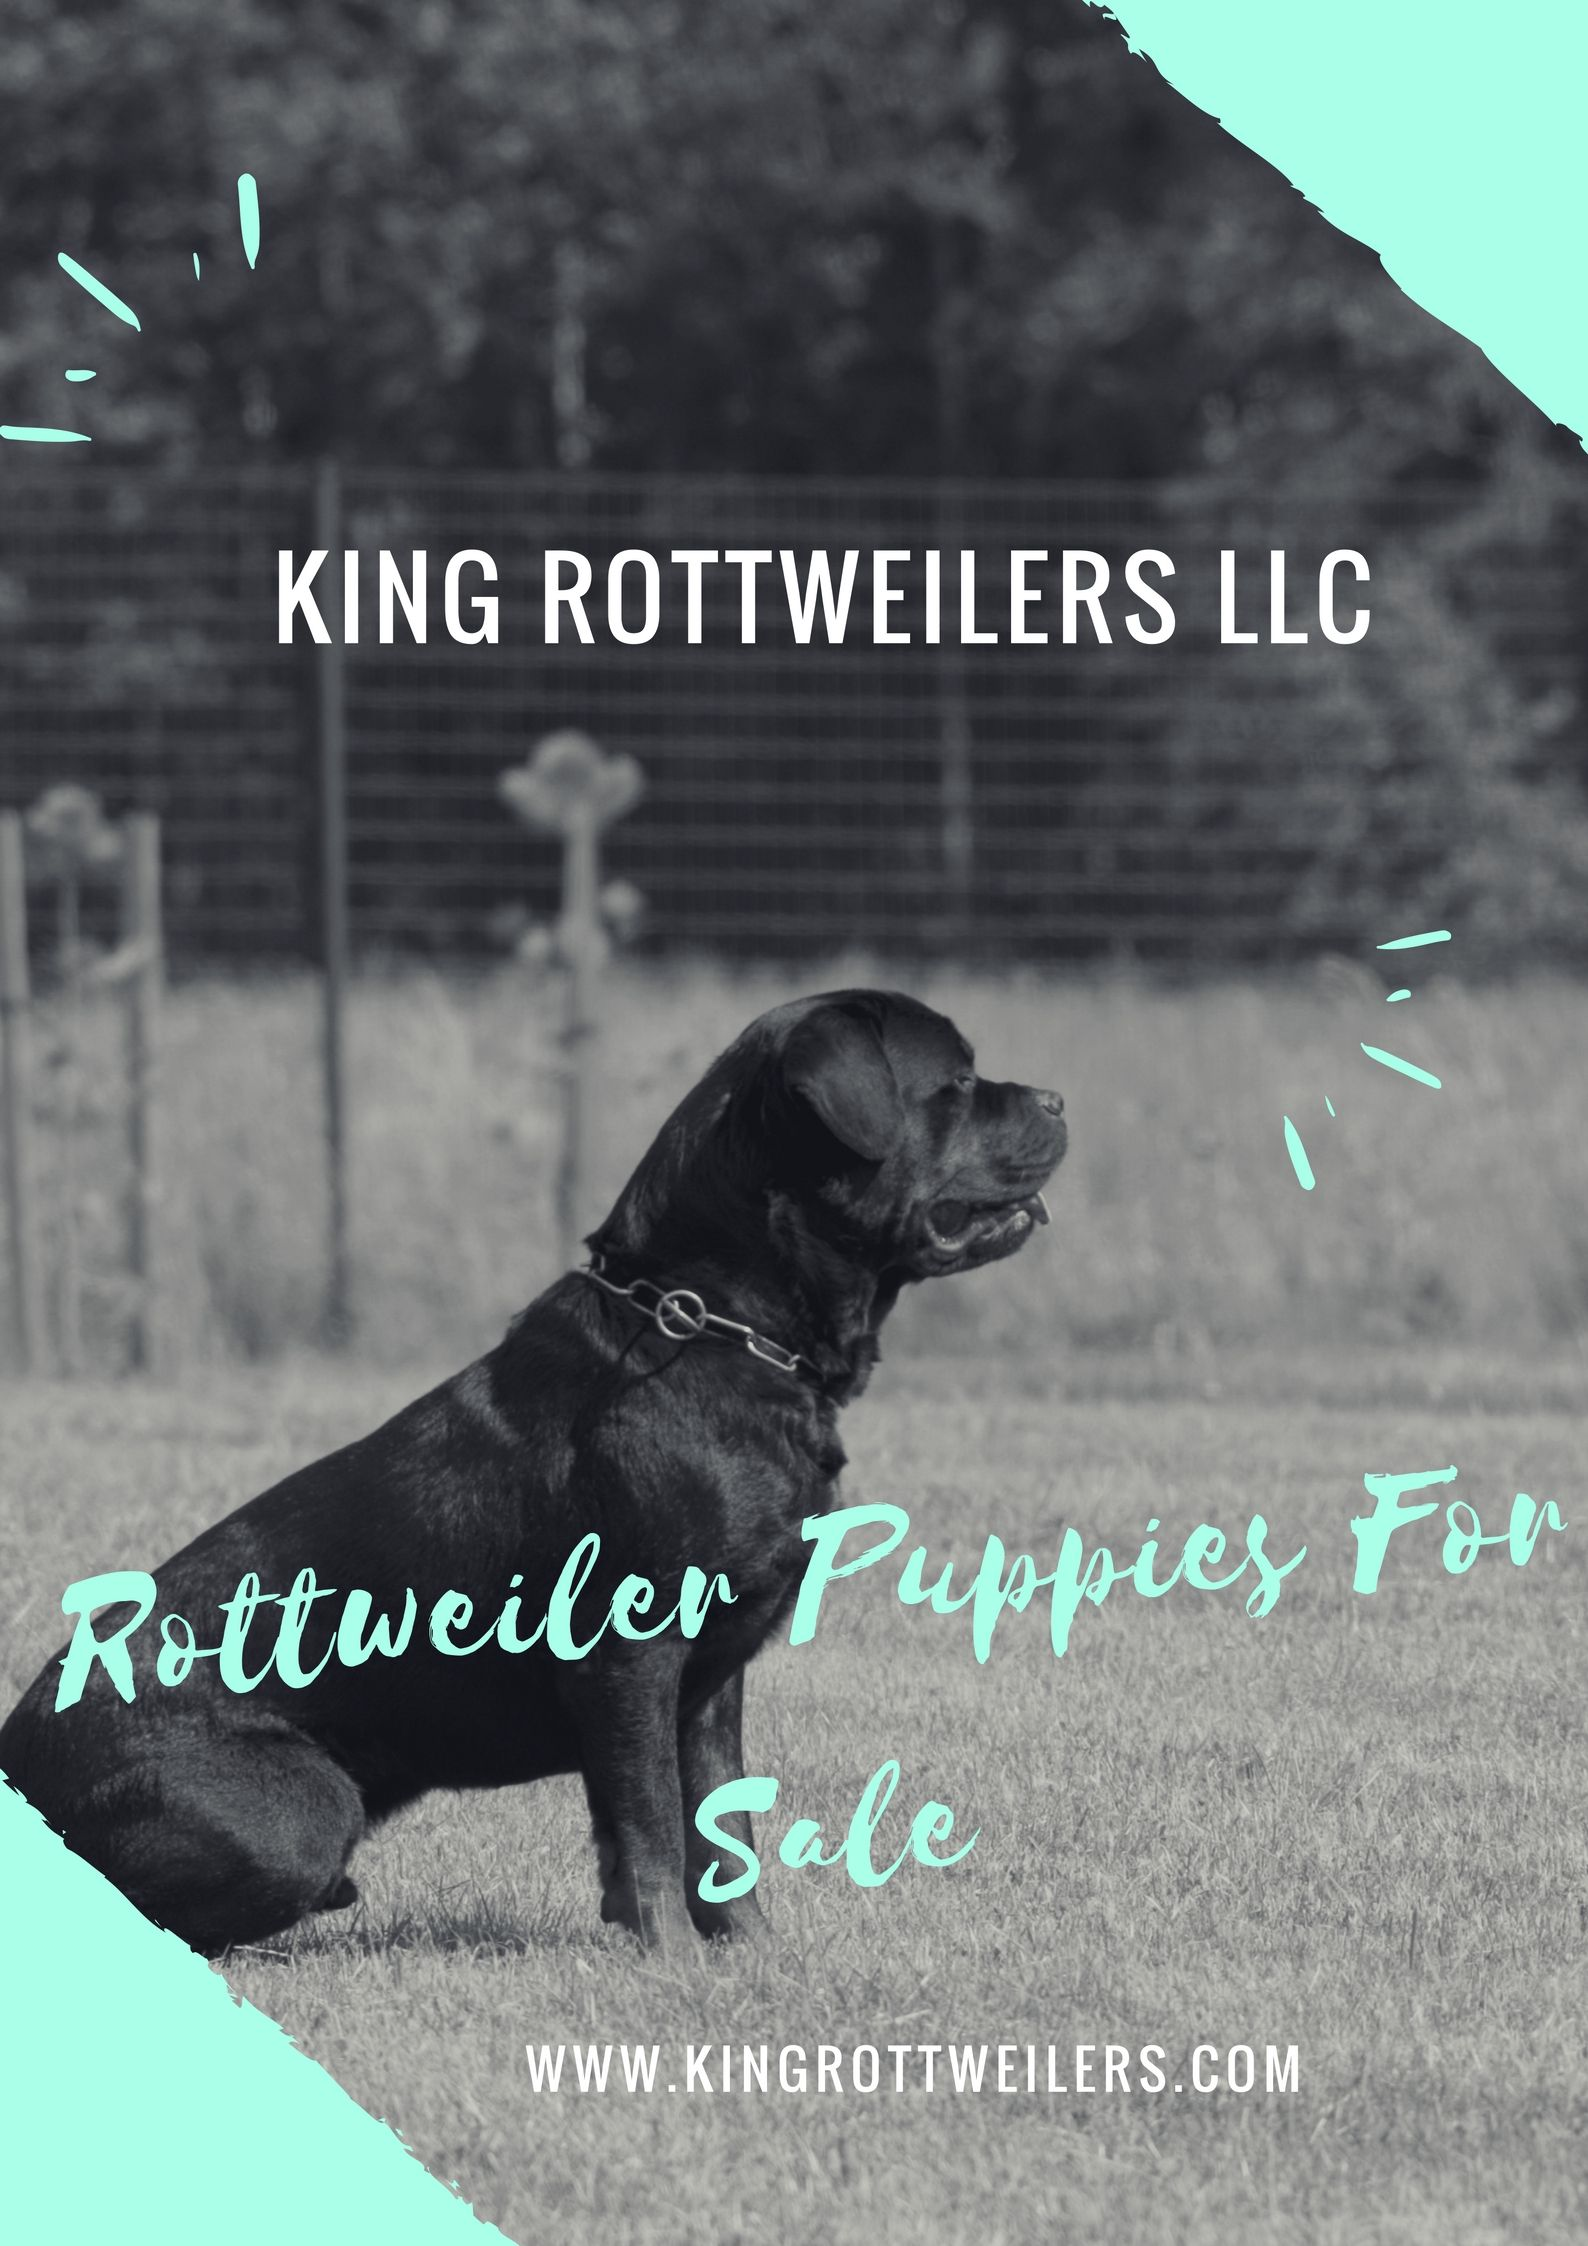 Giant Rottweiler Puppies For Sale! | Rottweiler Puppy Cost